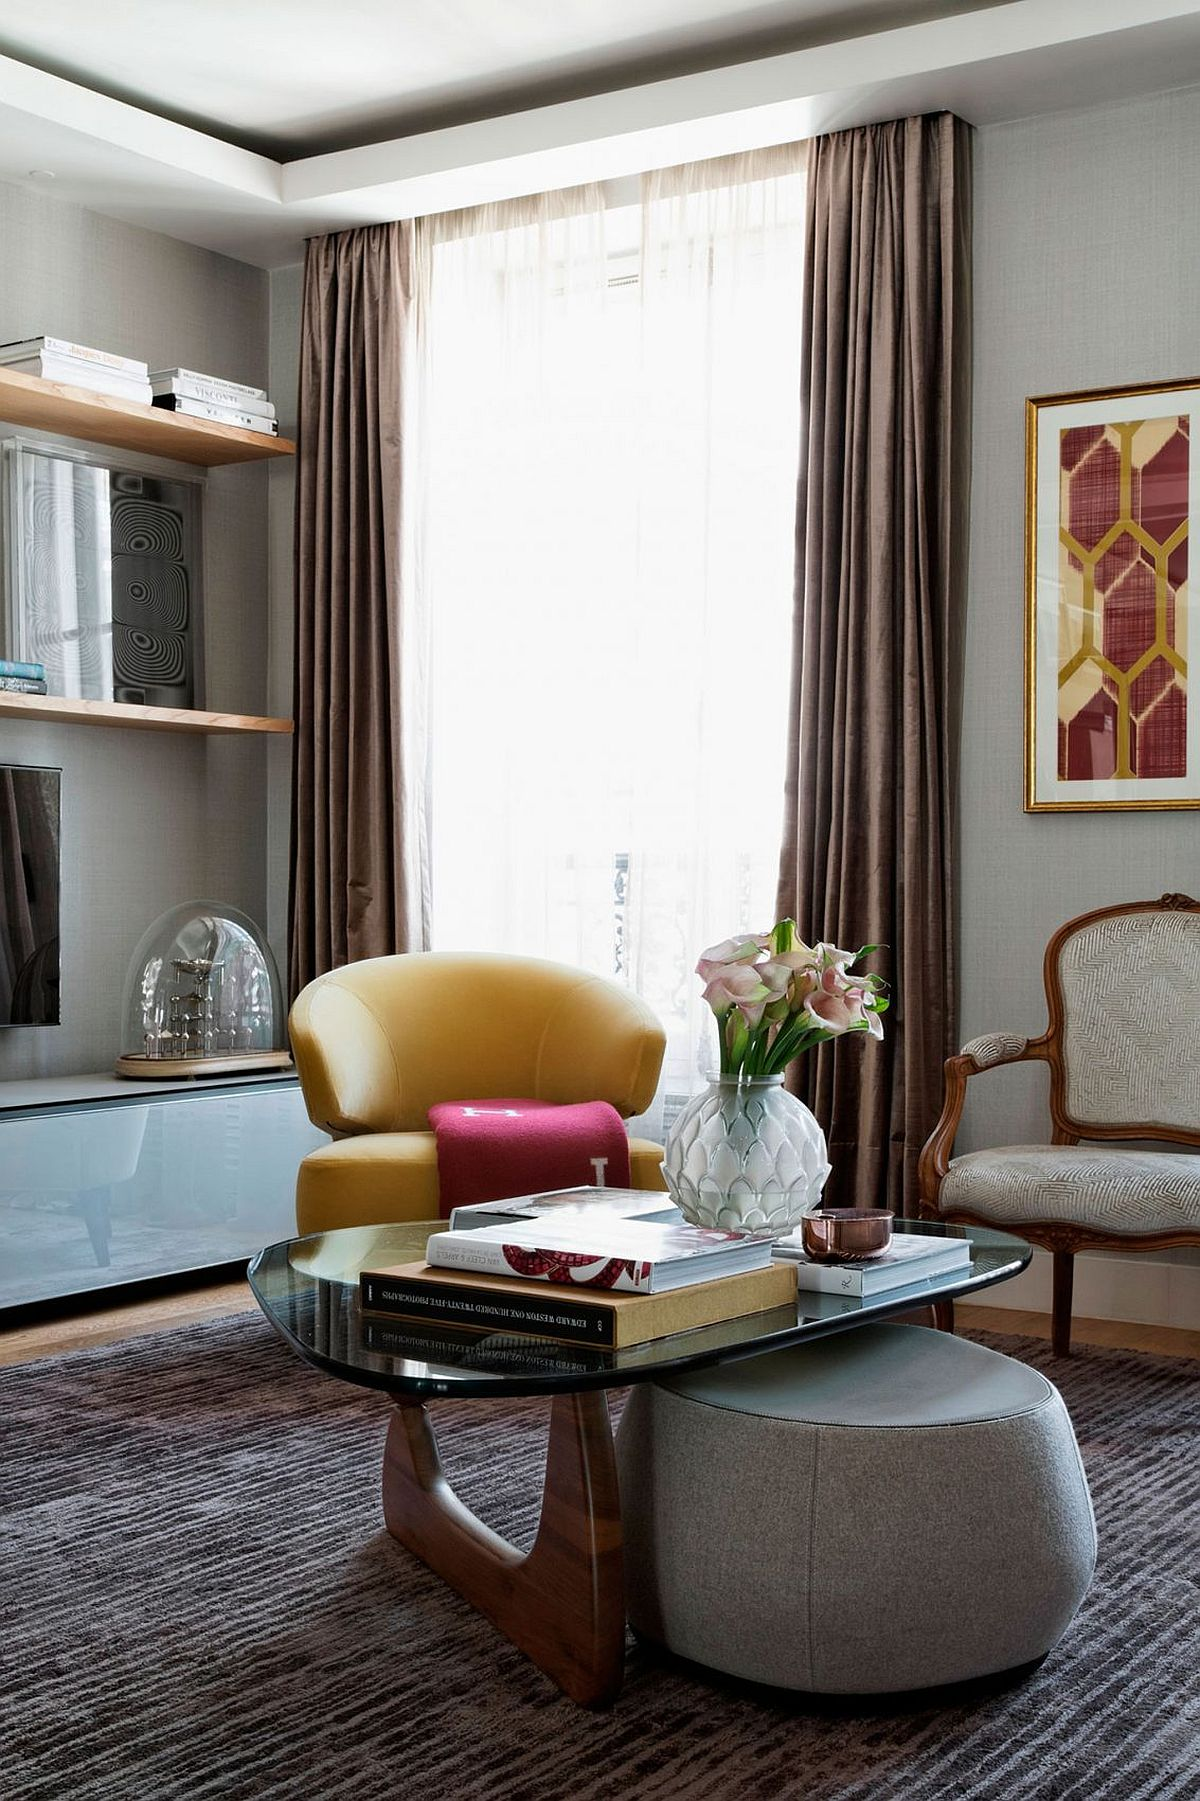 Gorgeous chair in yellow for the living room